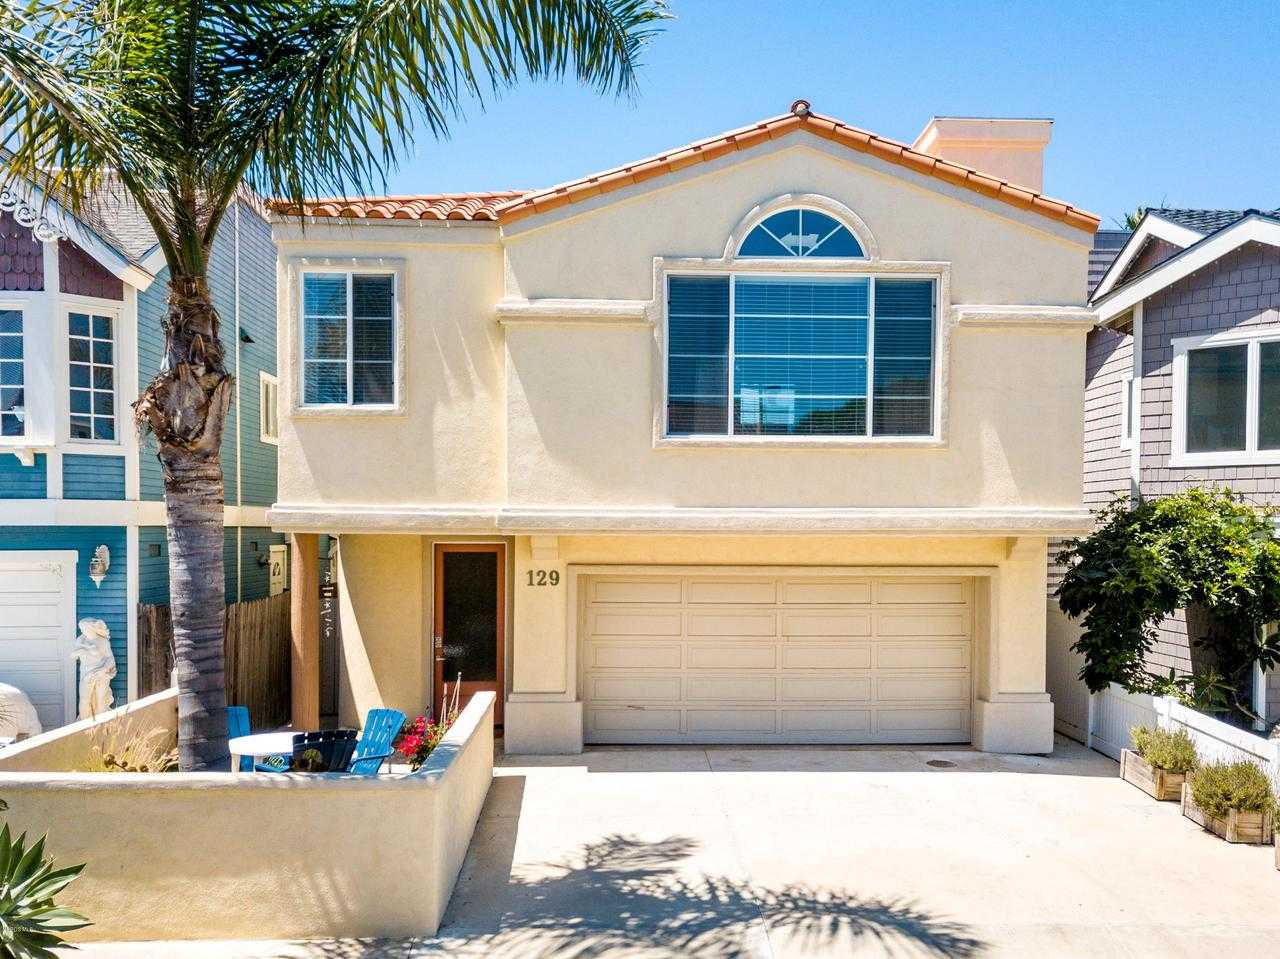 $1,029,000 - 3Br/3Ba -  for Sale in Oxnard